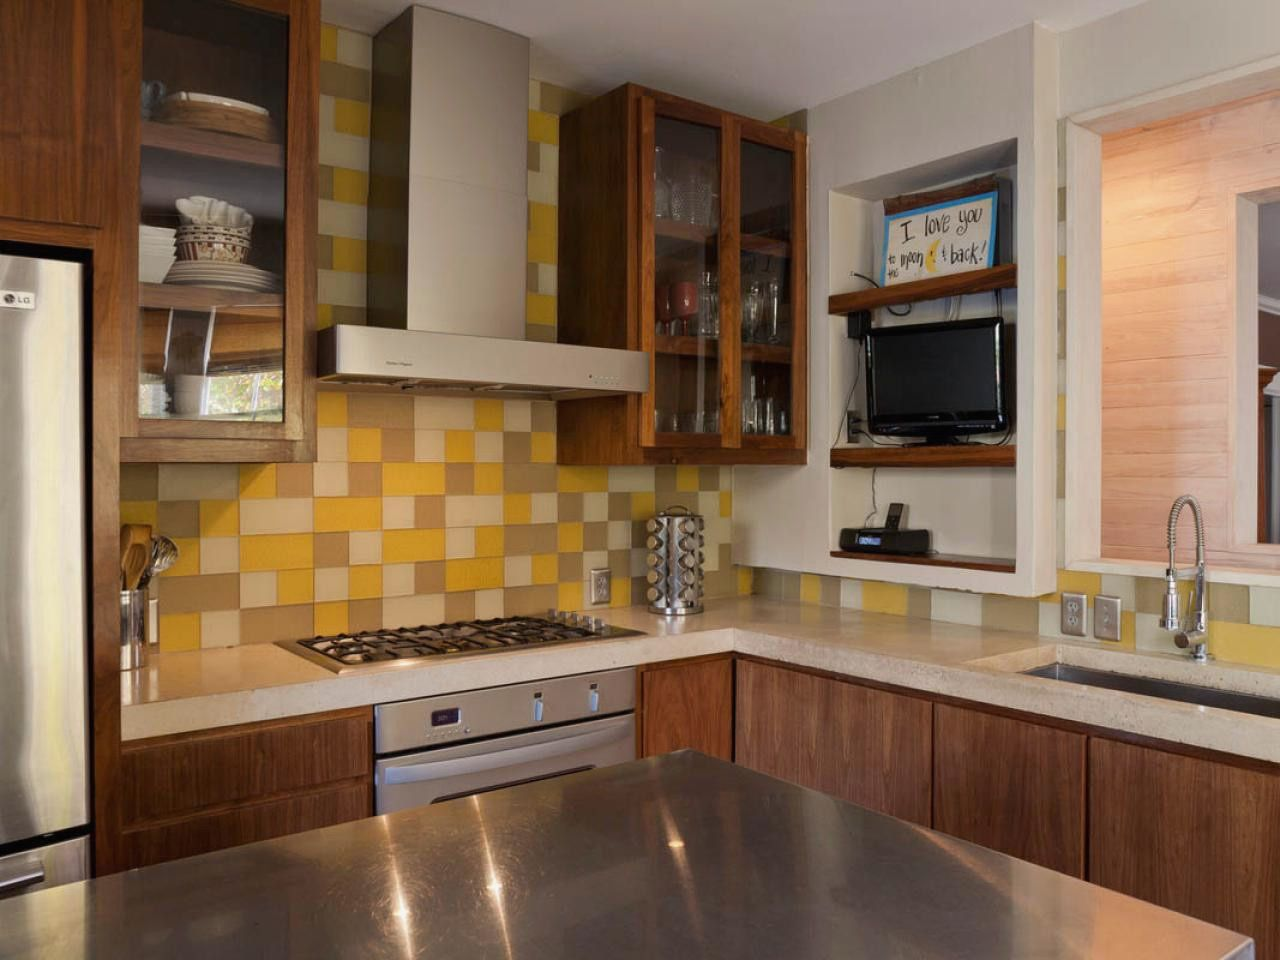 20+ Can You Paint Veneer Kitchen Cabinets - Design Ideas for Small ...